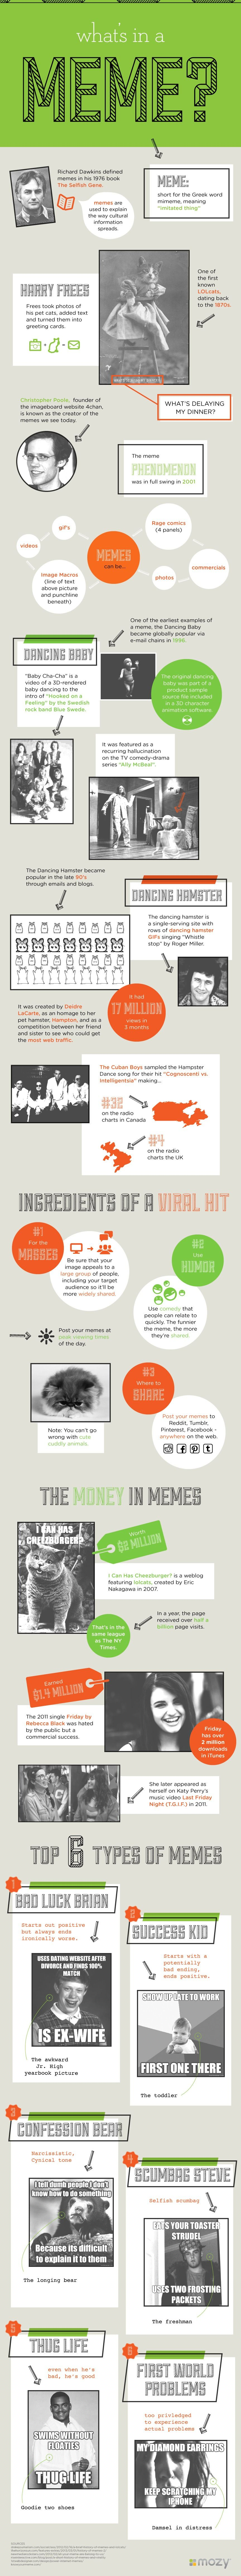 What's In a Meme? What makes a Viral Hit? #Infographic #infografía